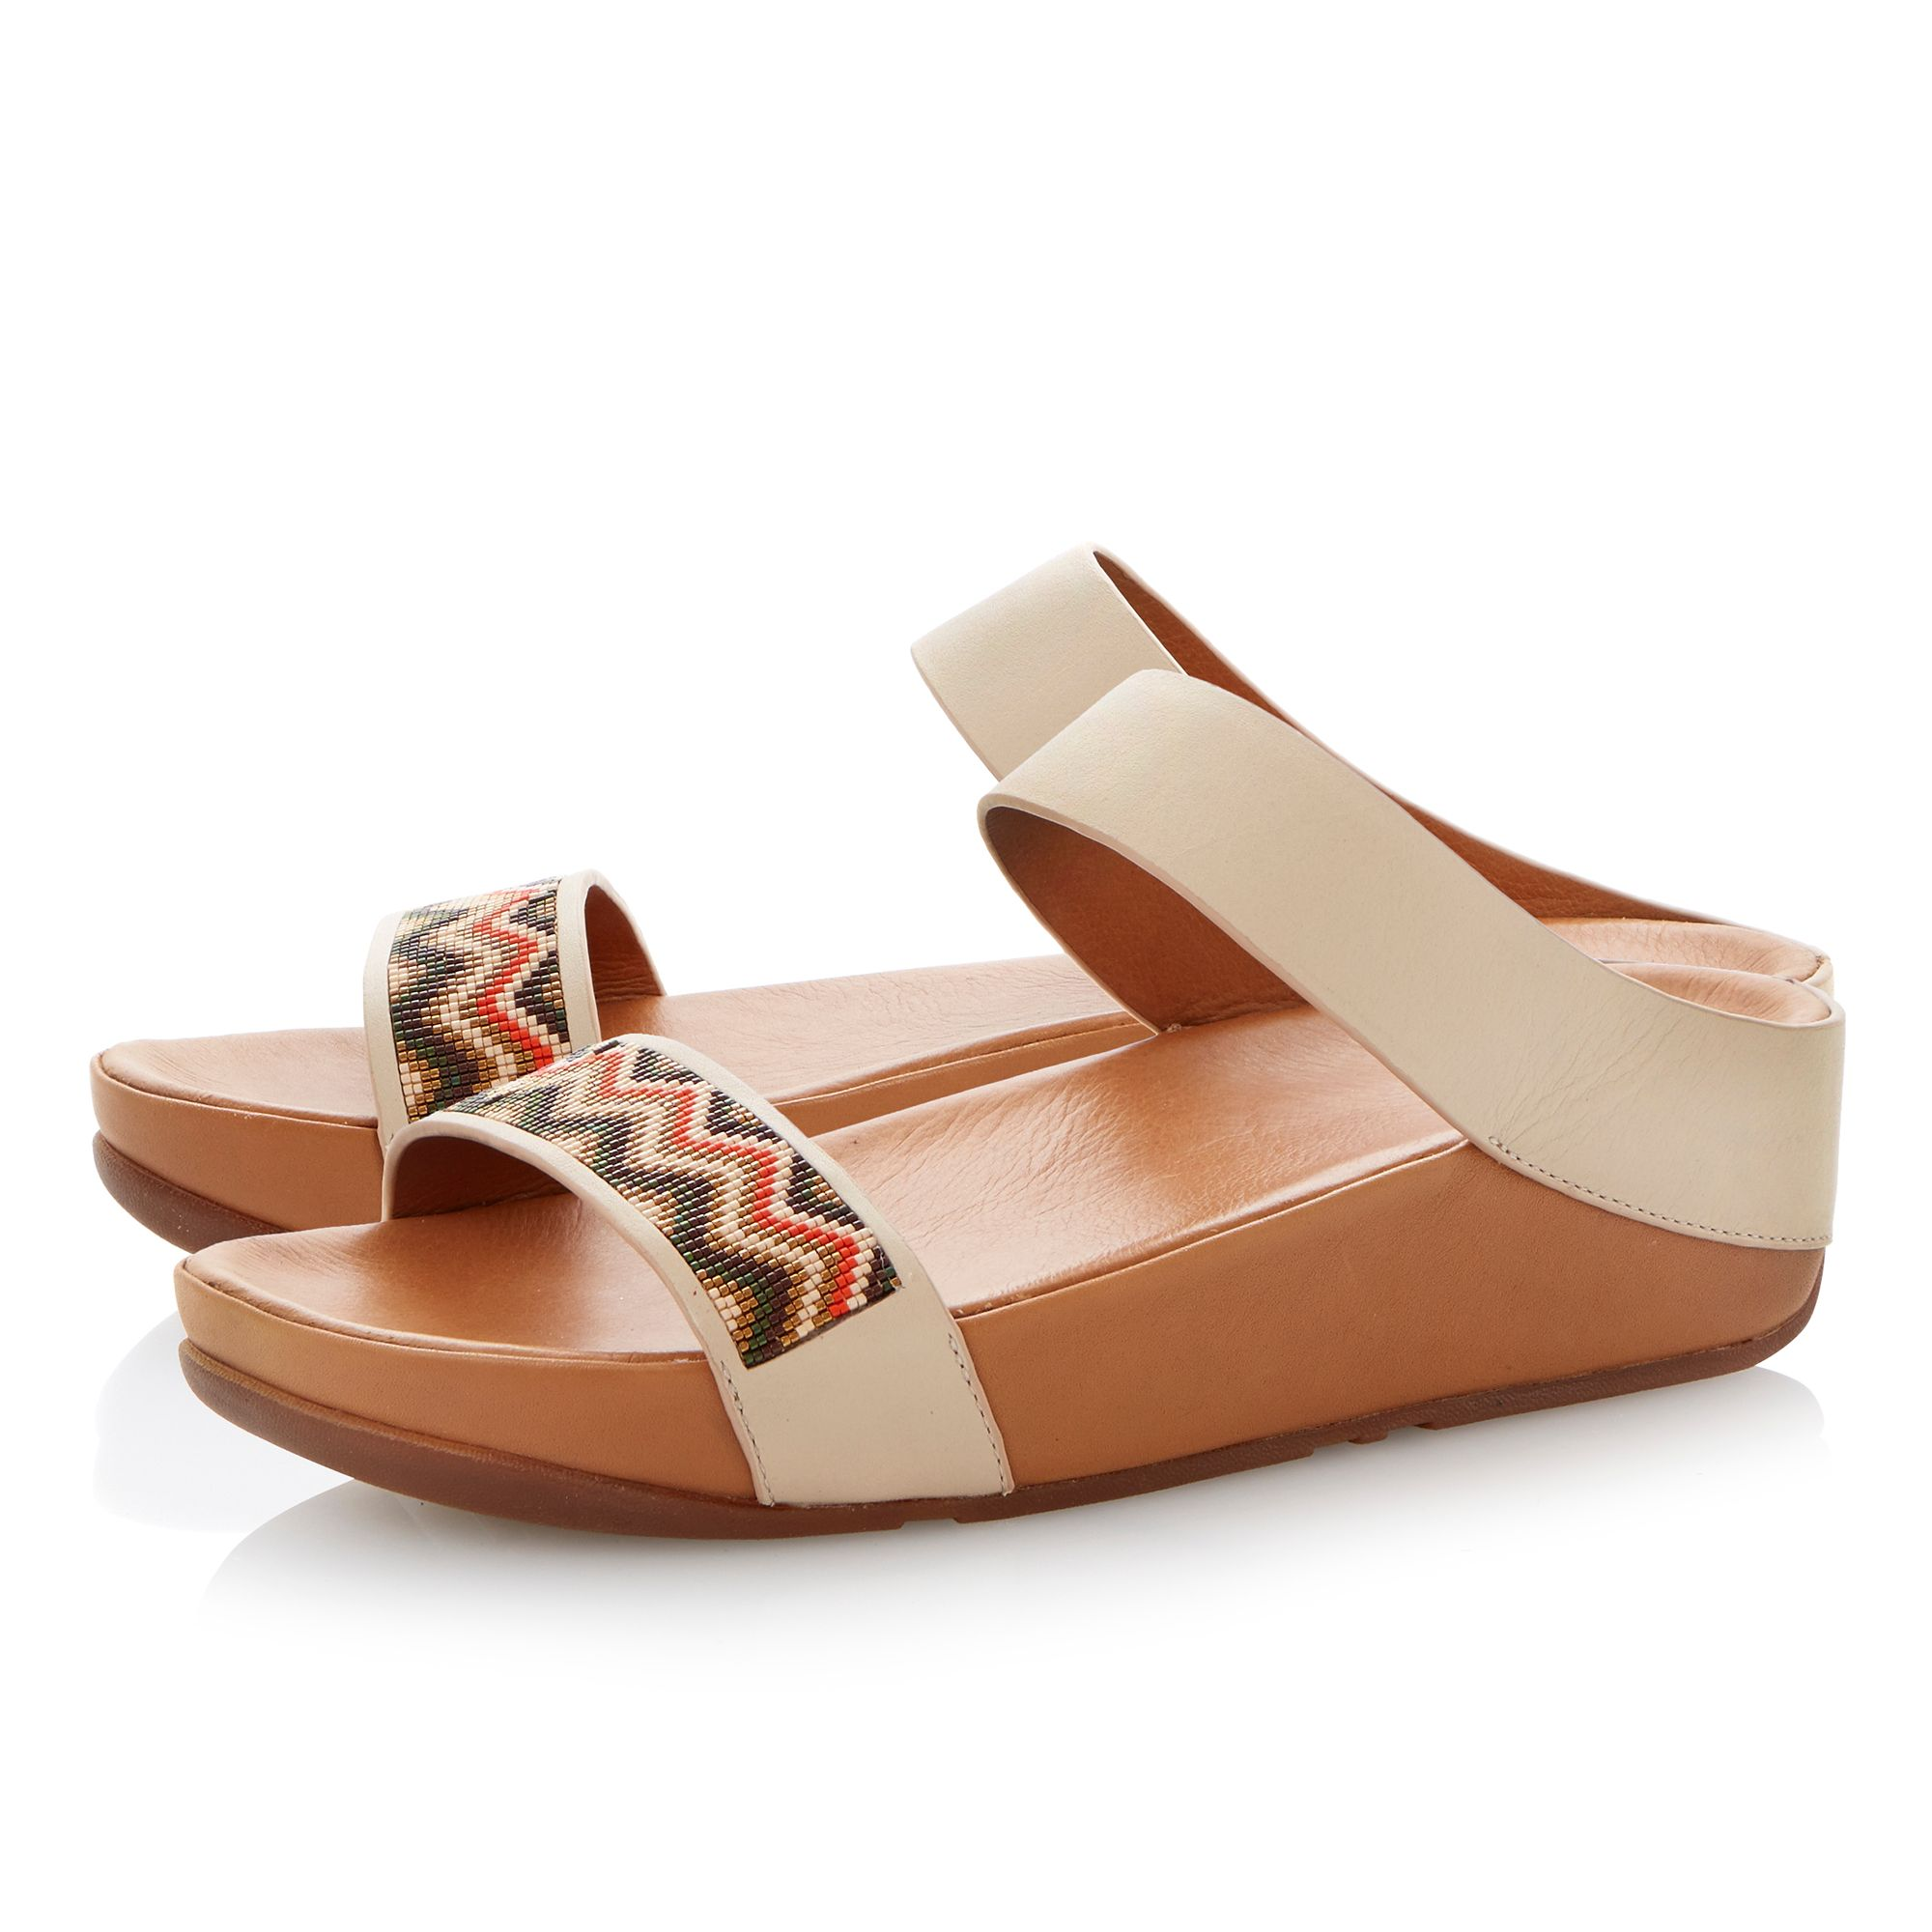 Manyano slide beaded mules